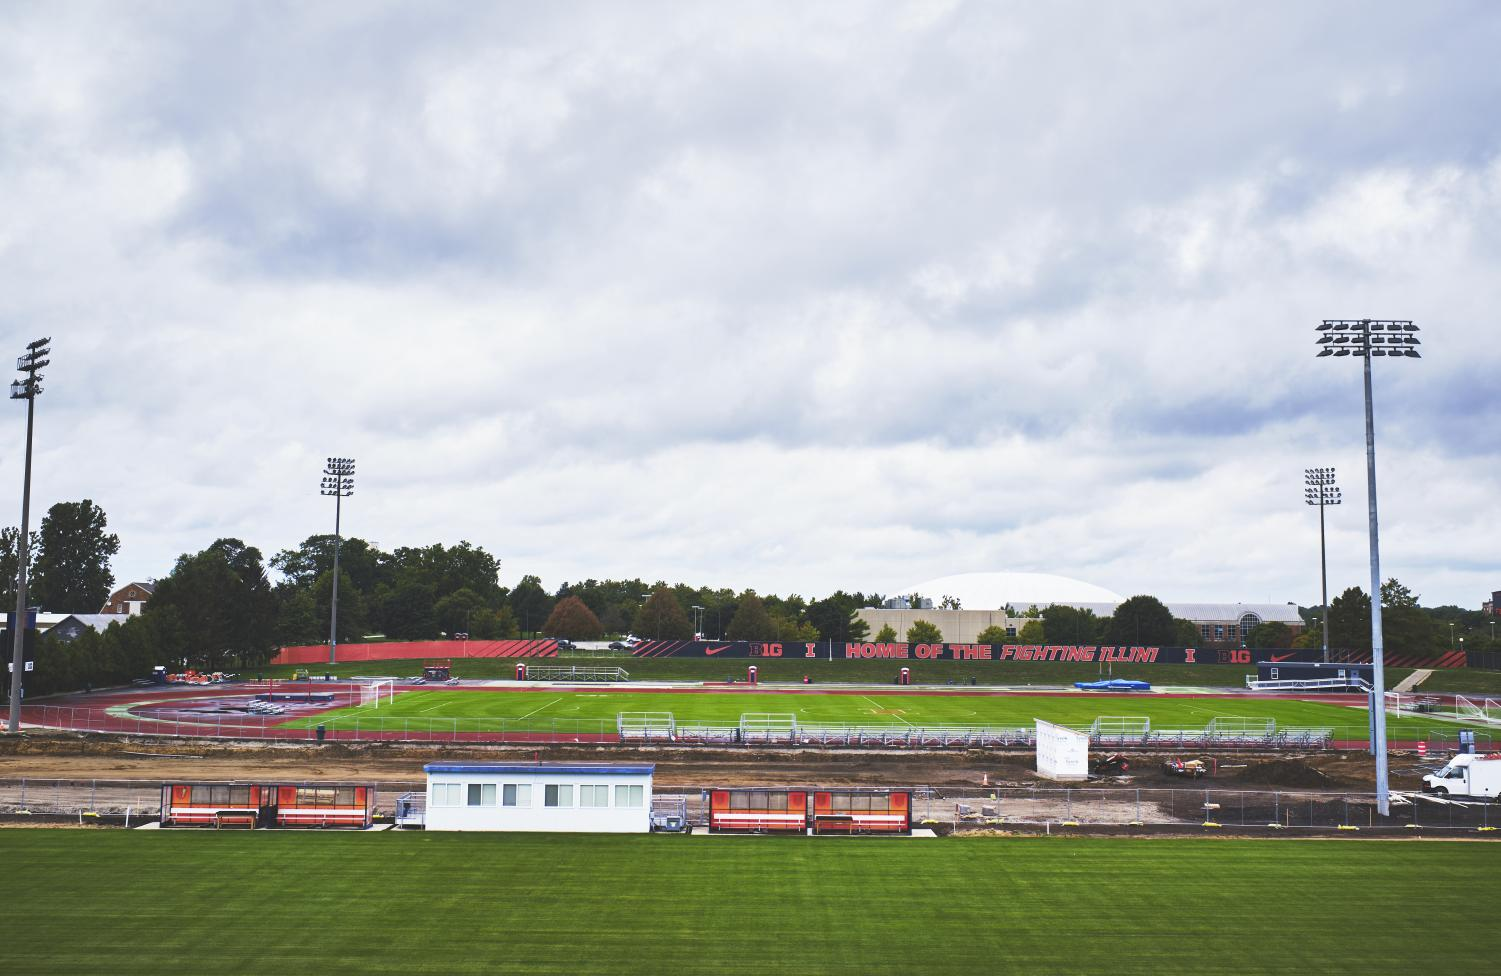 The Soccer and Track Stadium at the University is currently under construction. The Demirjian Park project is scheduled to be completed in 2020, but the fields are scheduled to be completed by Sept. 15 in time for Illinois soccer next home match.